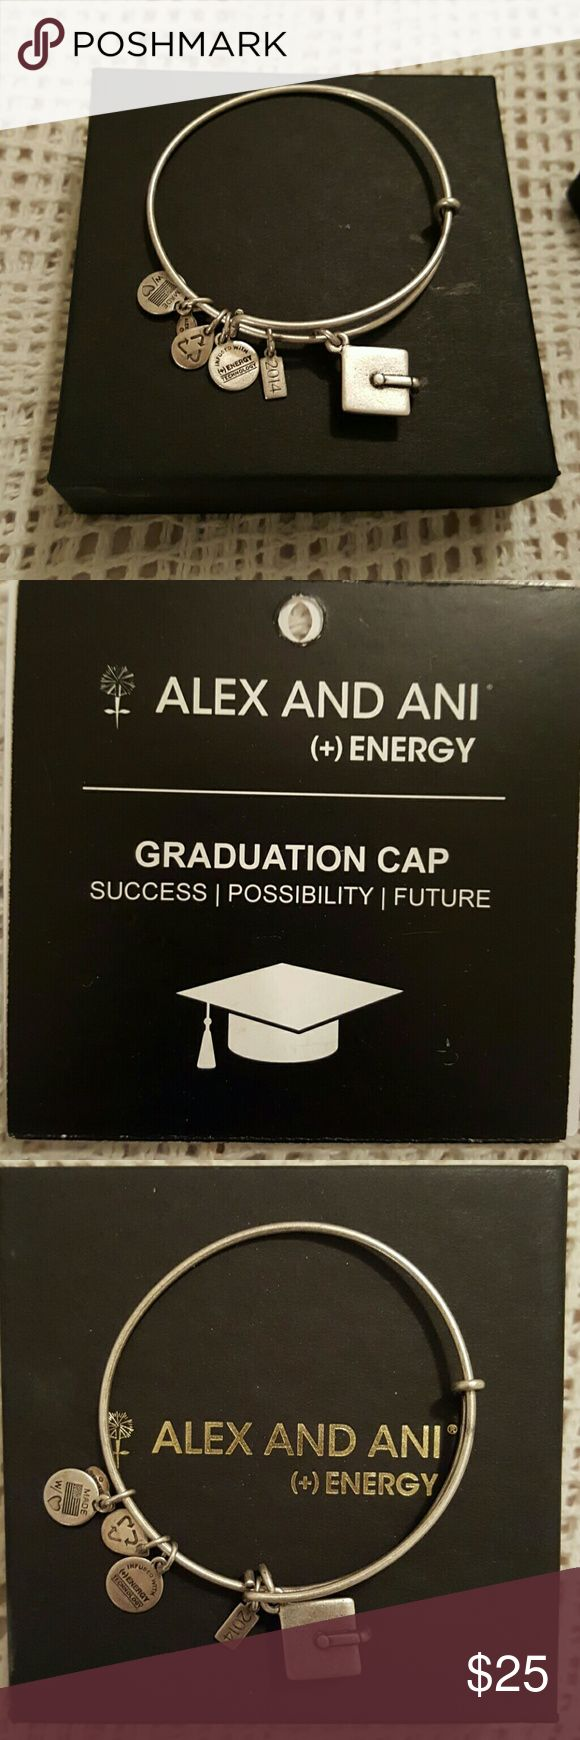 Alex & Ani Silver Graduation Bangle This has been worn a few times there are very little signs of wear and is almost like new. Comes with box and care instructions. Alex & Ani Jewelry Bracelets